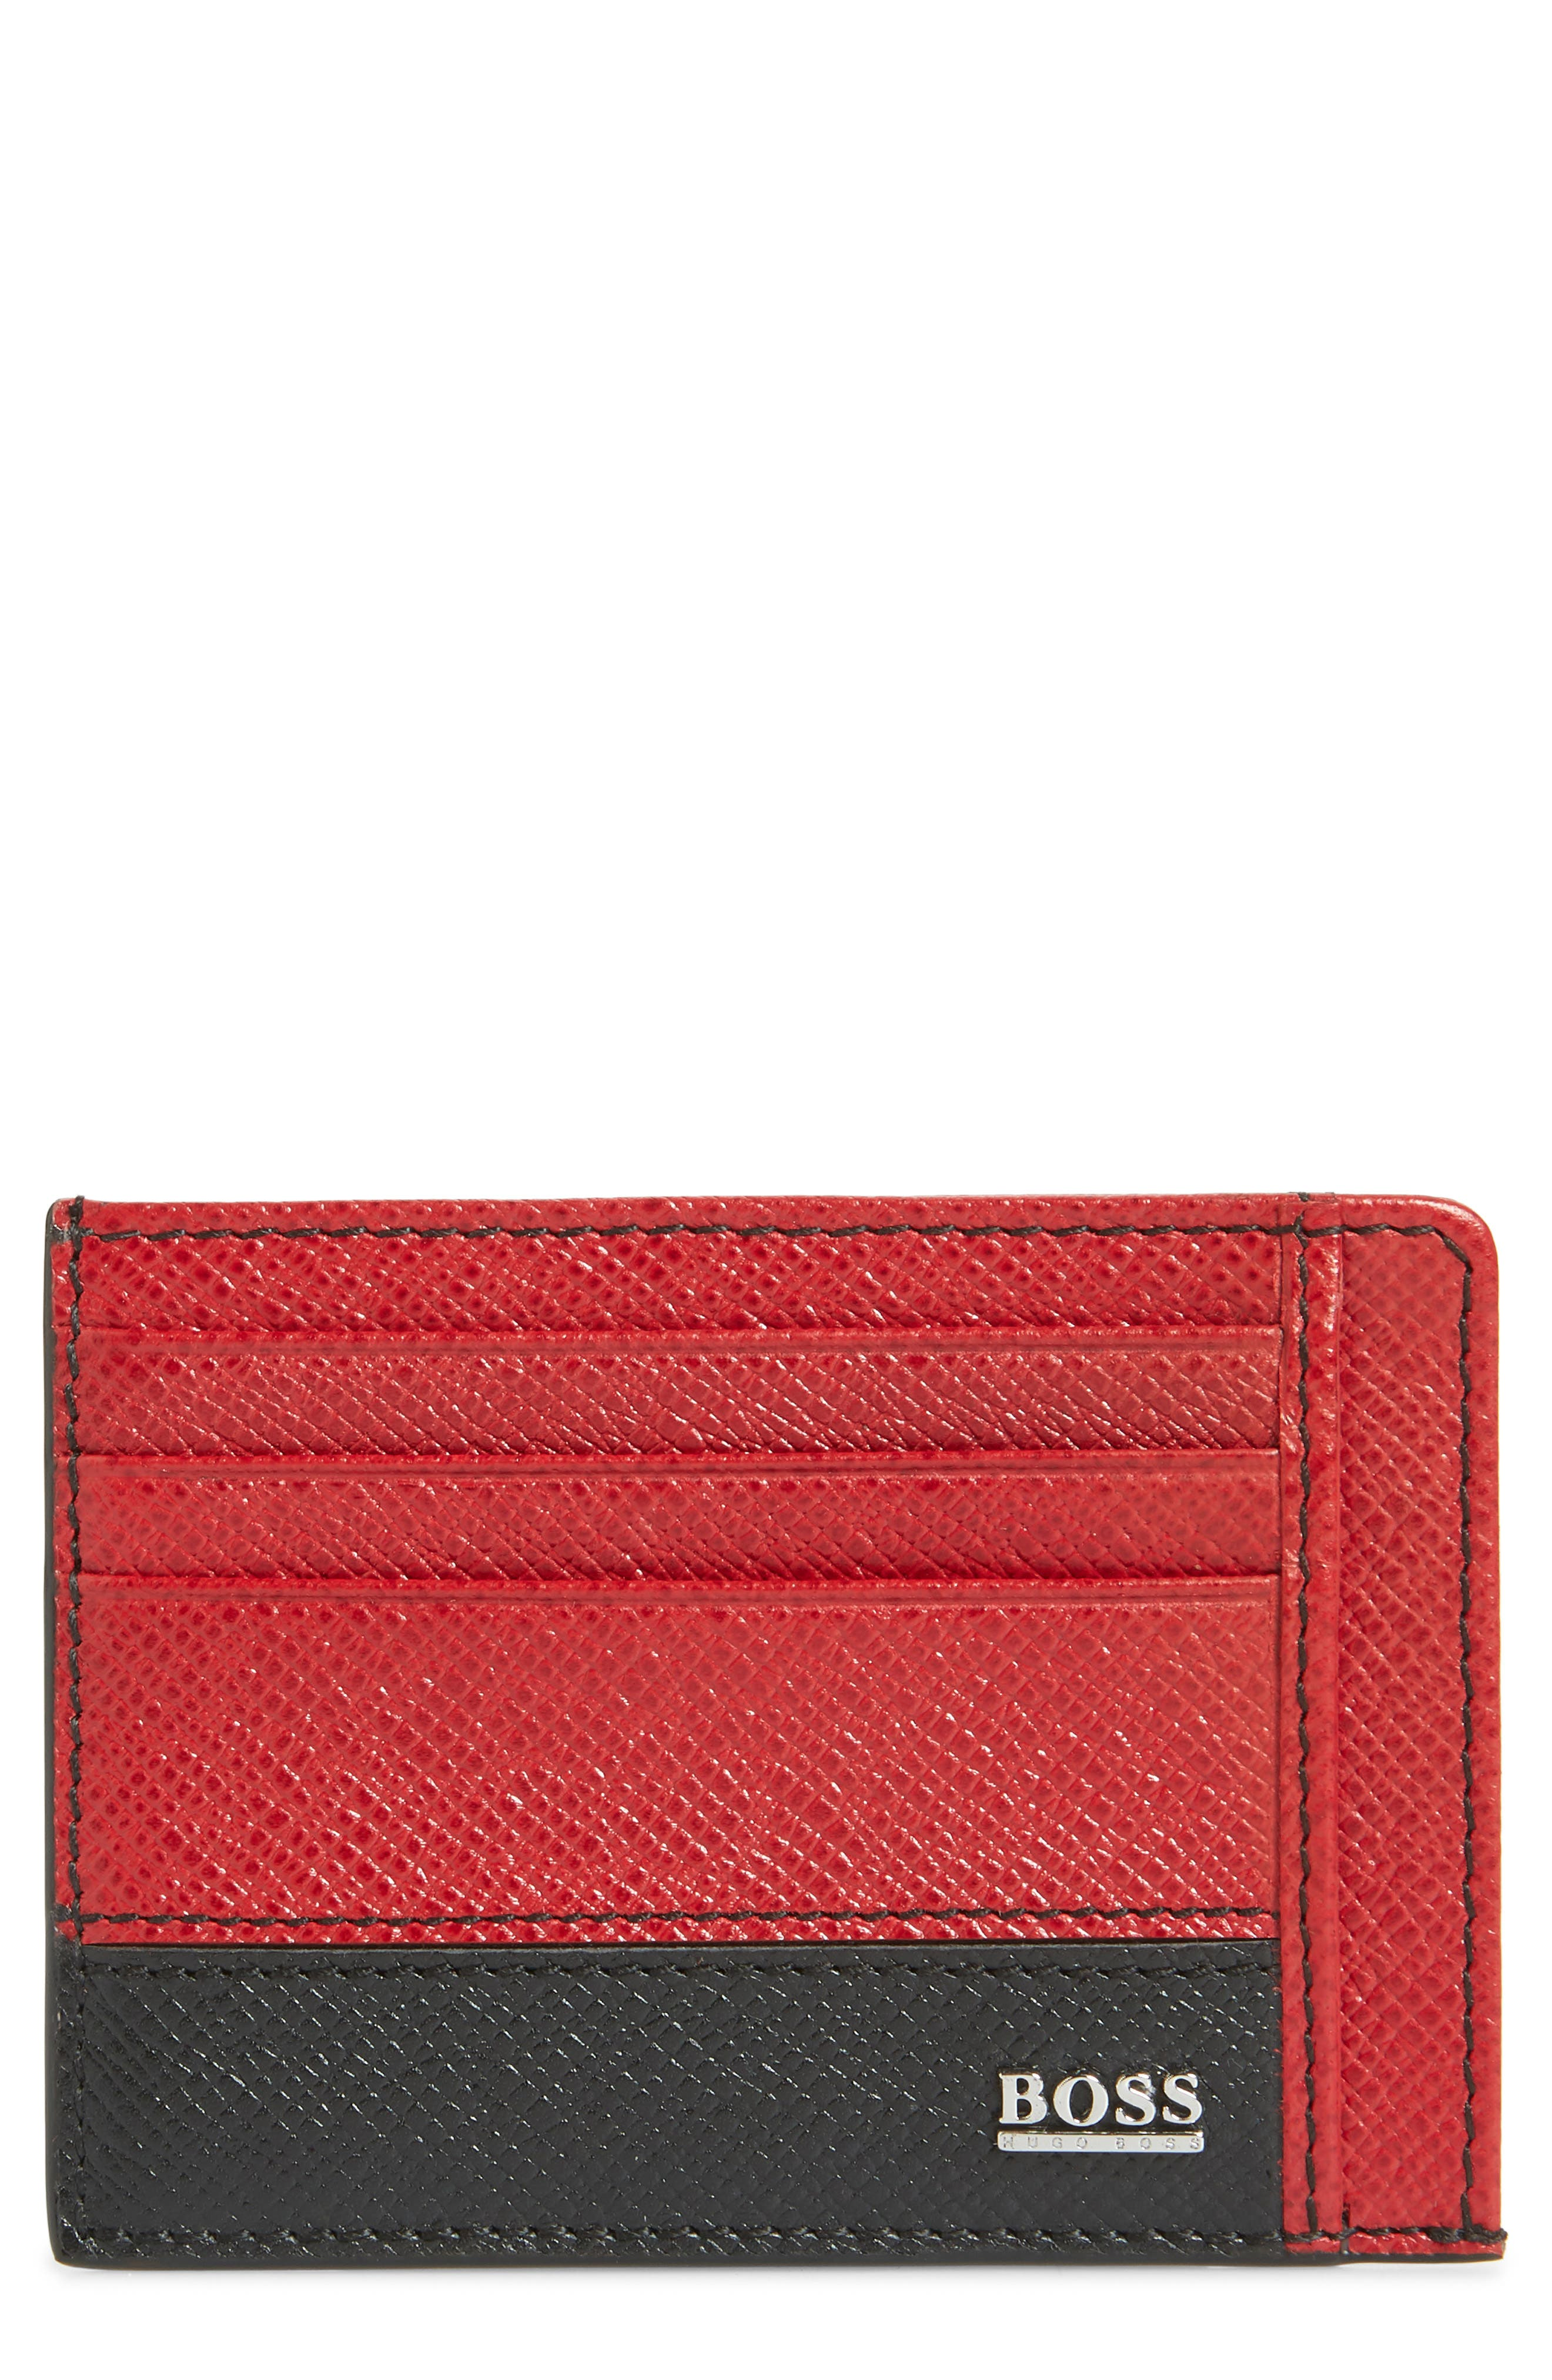 Embossed Leather Card Case,                         Main,                         color, DARK RED